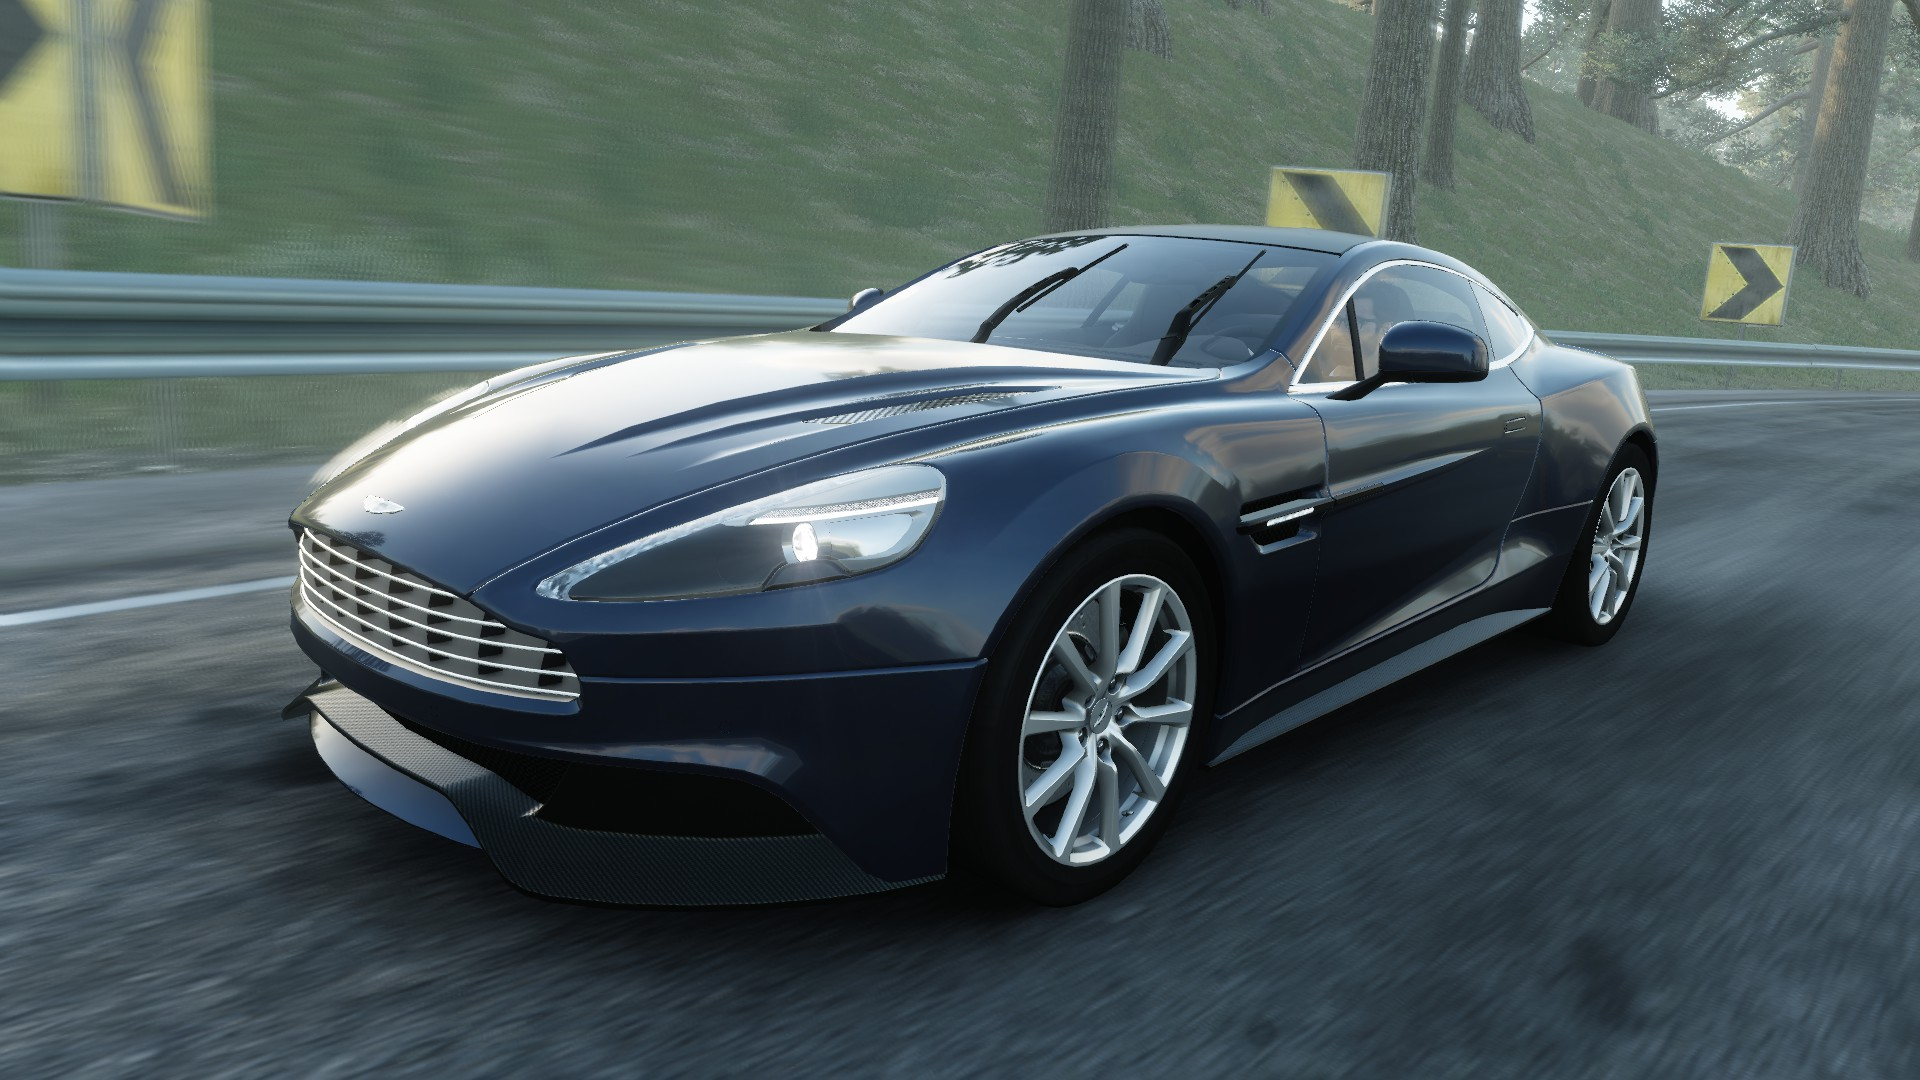 aston martin vanquish the crew wiki fandom powered by wikia. Black Bedroom Furniture Sets. Home Design Ideas